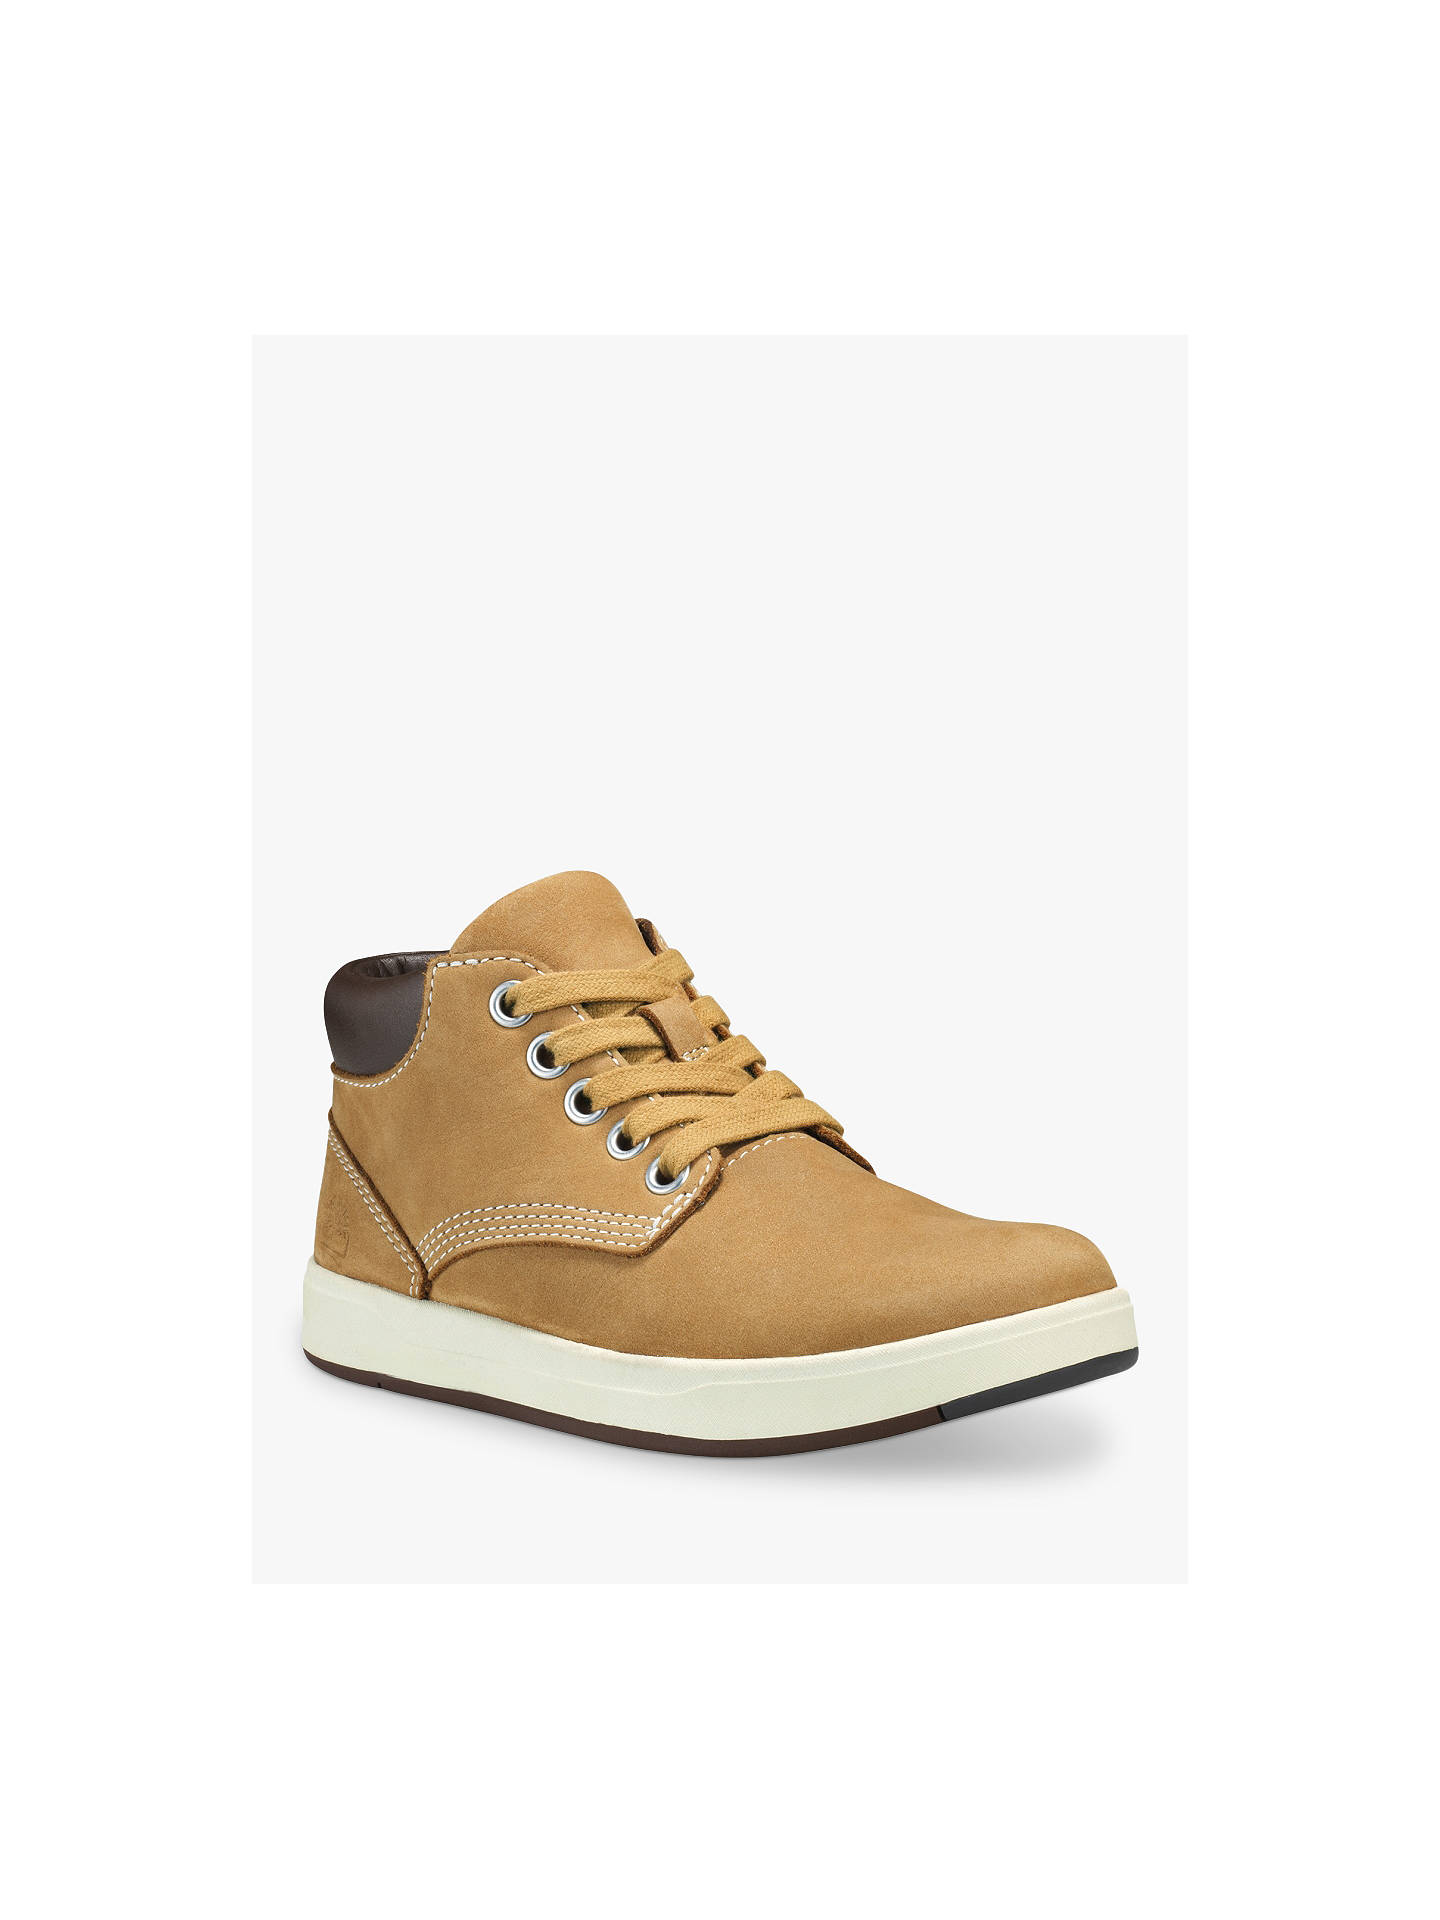 BuyTimberland Children's Davis Square Chukka Boots, Wheat, 12.5 Online at johnlewis.com